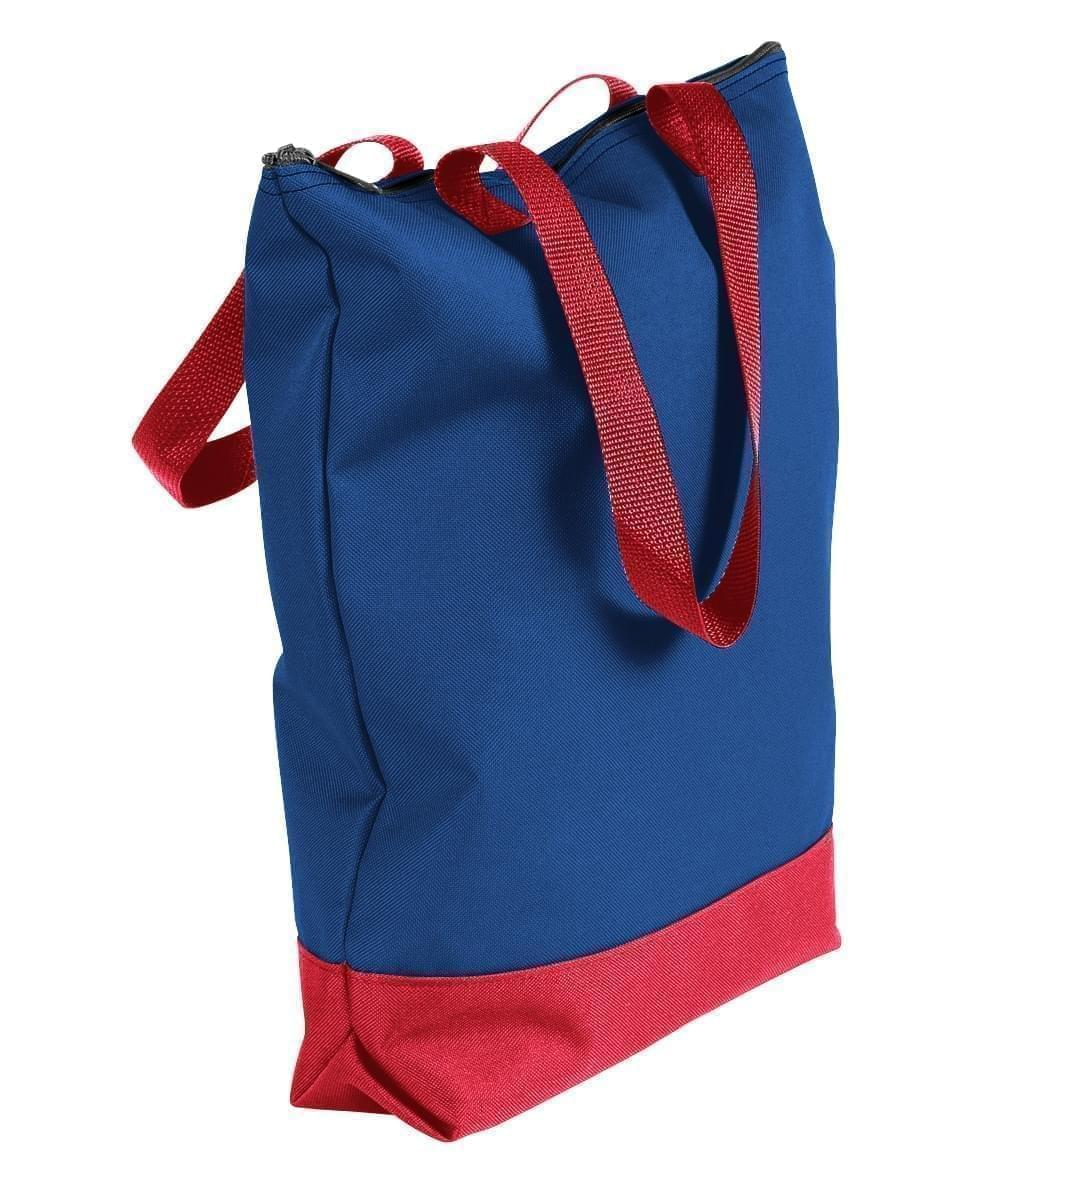 USA Made Canvas Portfolio Tote Bags, Royal Blue-Red, 1AAMX1UAF2